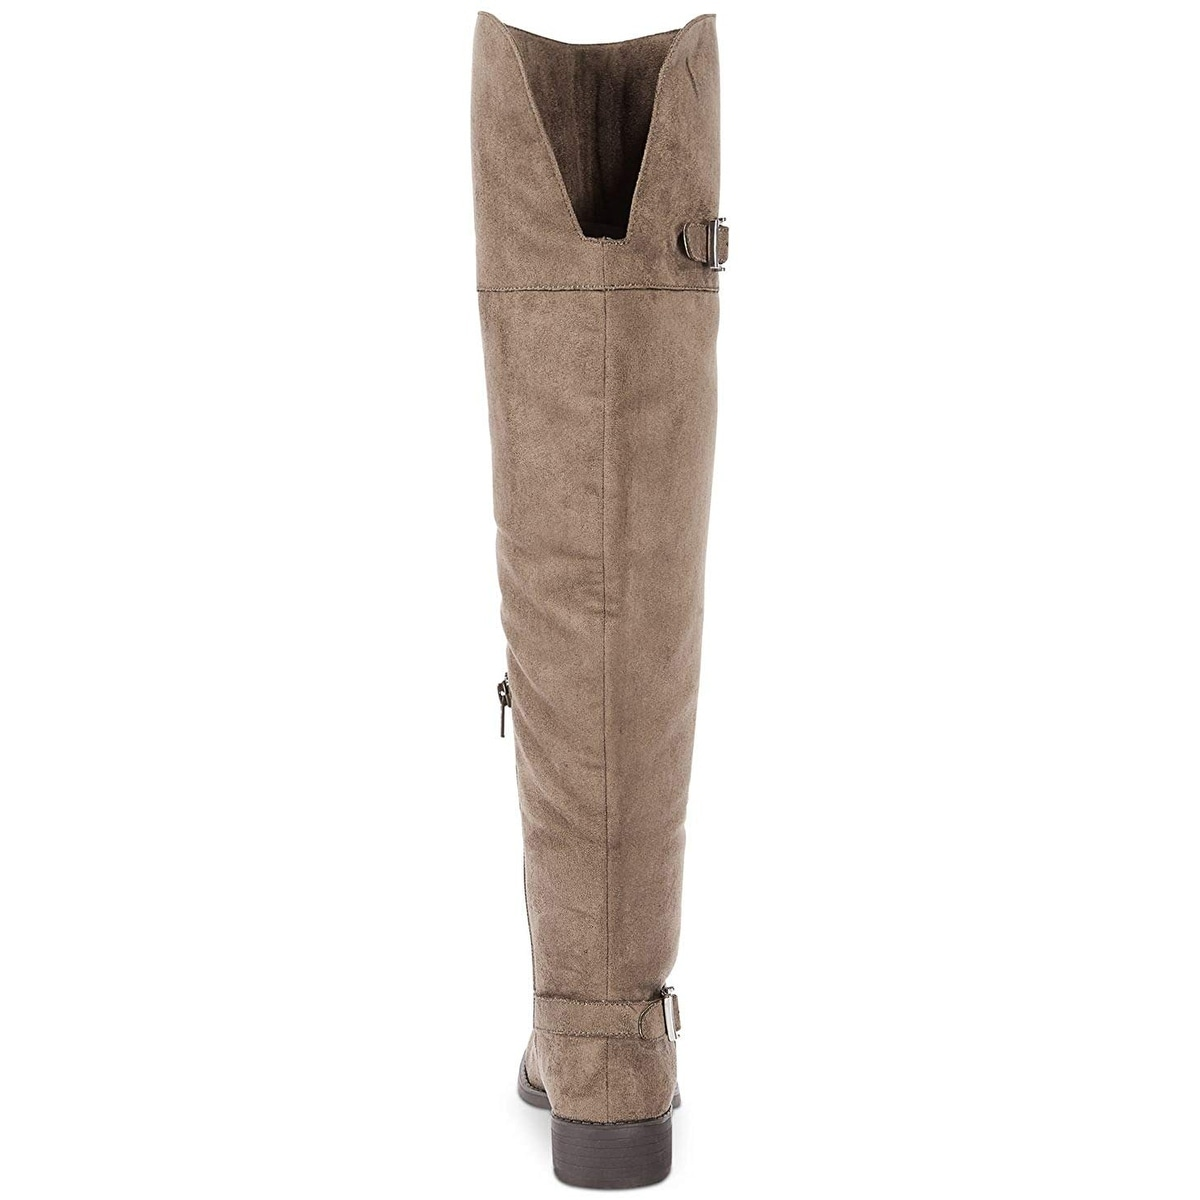 5474621c995 Shop American Rag Womens Adarra wc Closed Toe Over Knee Fashion Boots -  Free Shipping Today - Overstock - 25628455